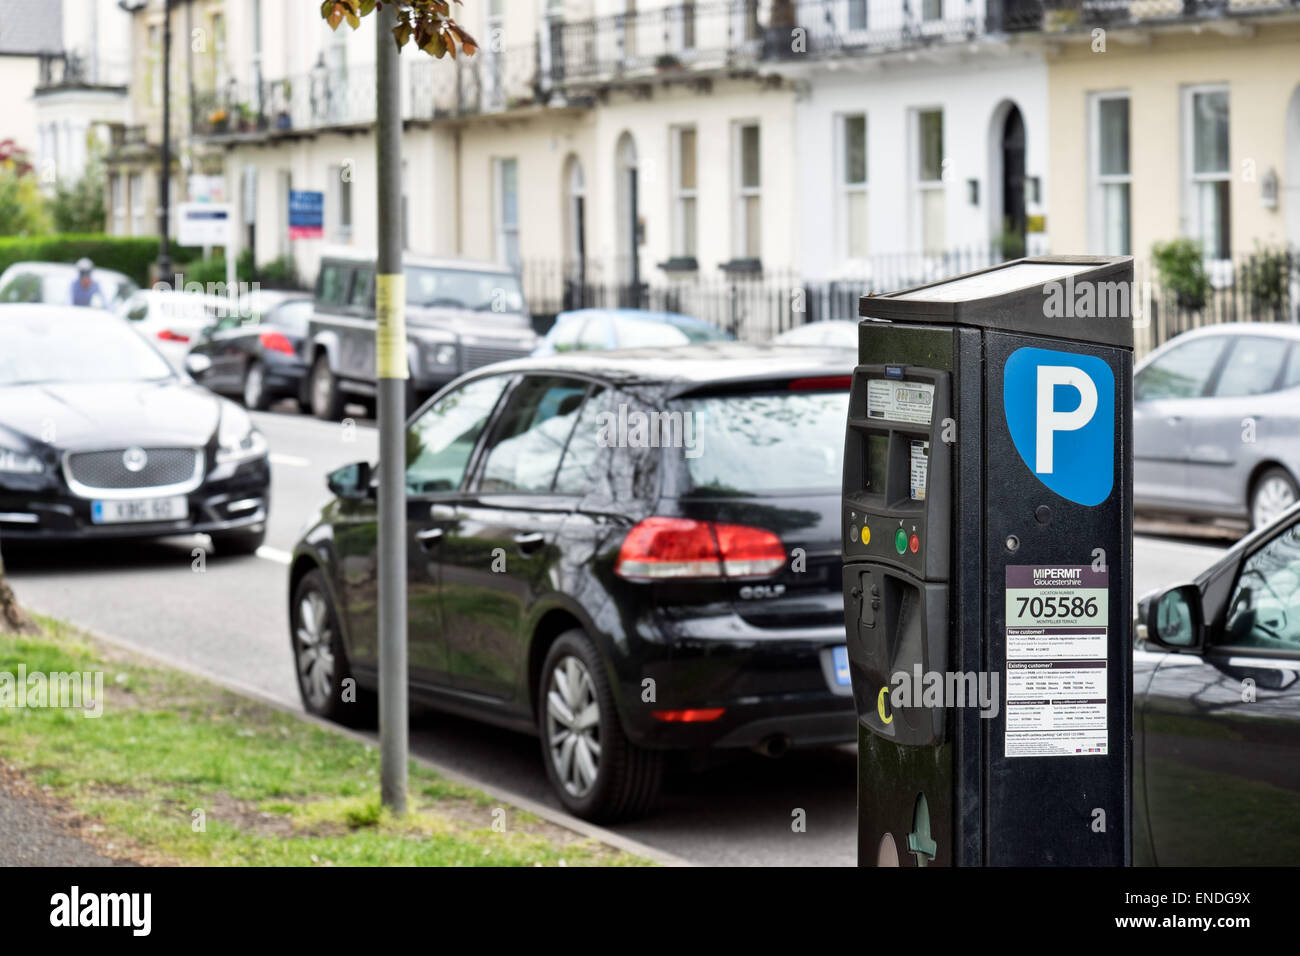 Cars parked by a meter along a parking controlled street in Cheltenham, Gloucestershire, UK - Stock Image